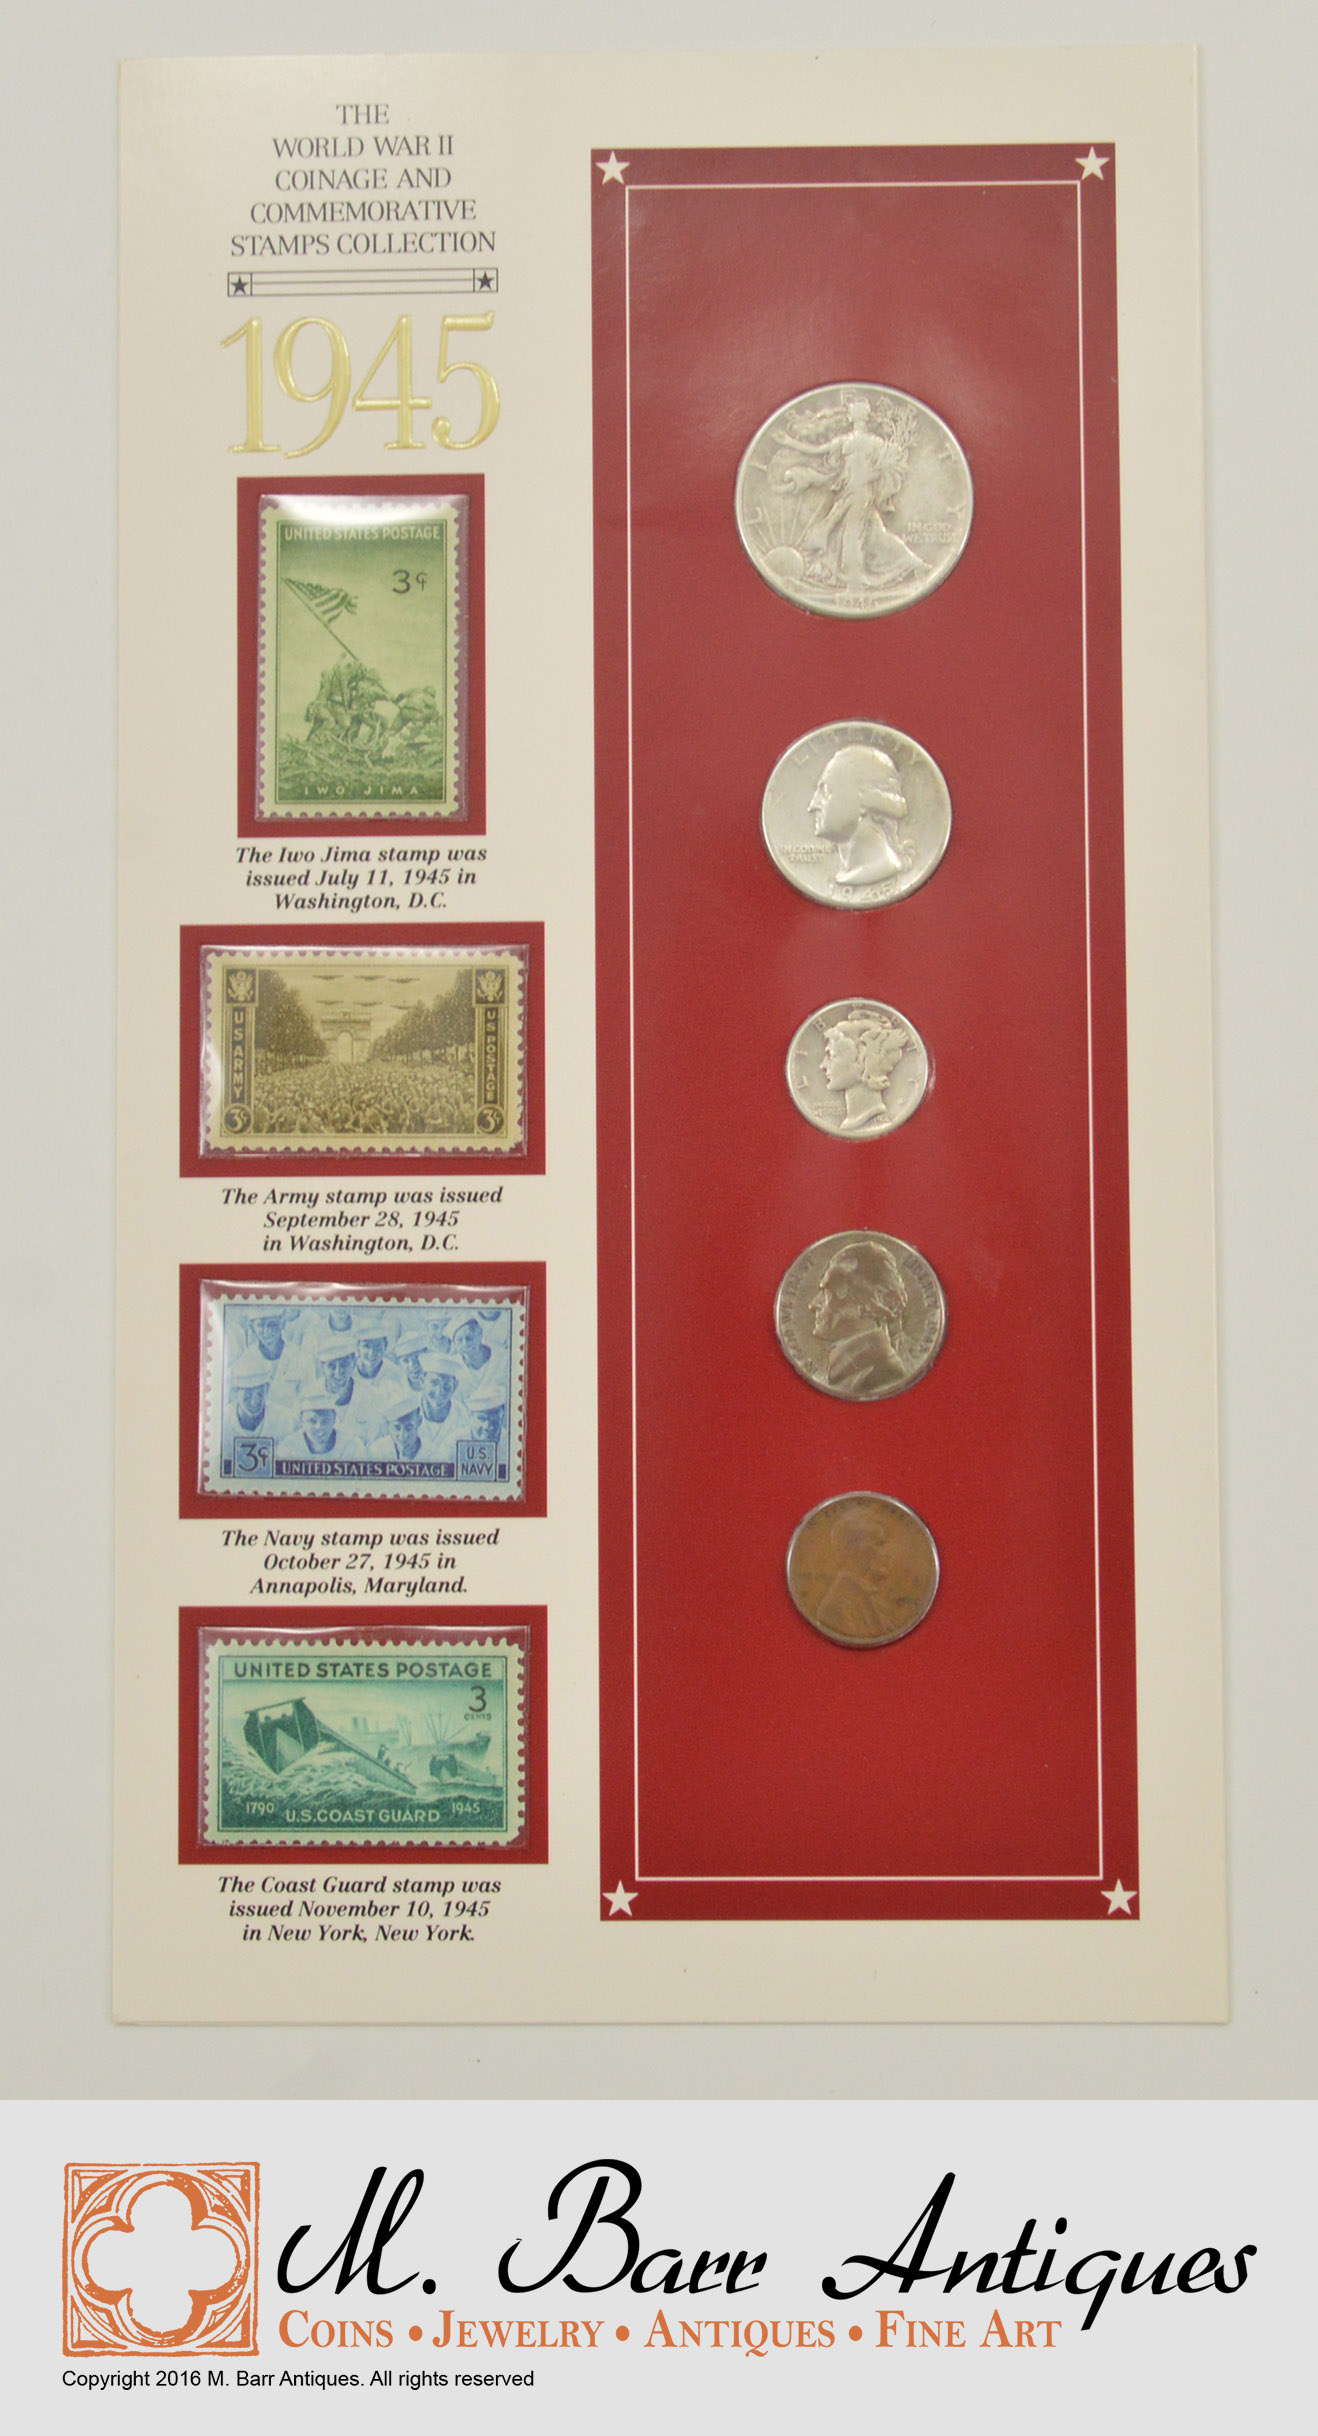 SILVER Coin Set 1945 World War II Coinage And Commemorative Stamps Collection Historic US